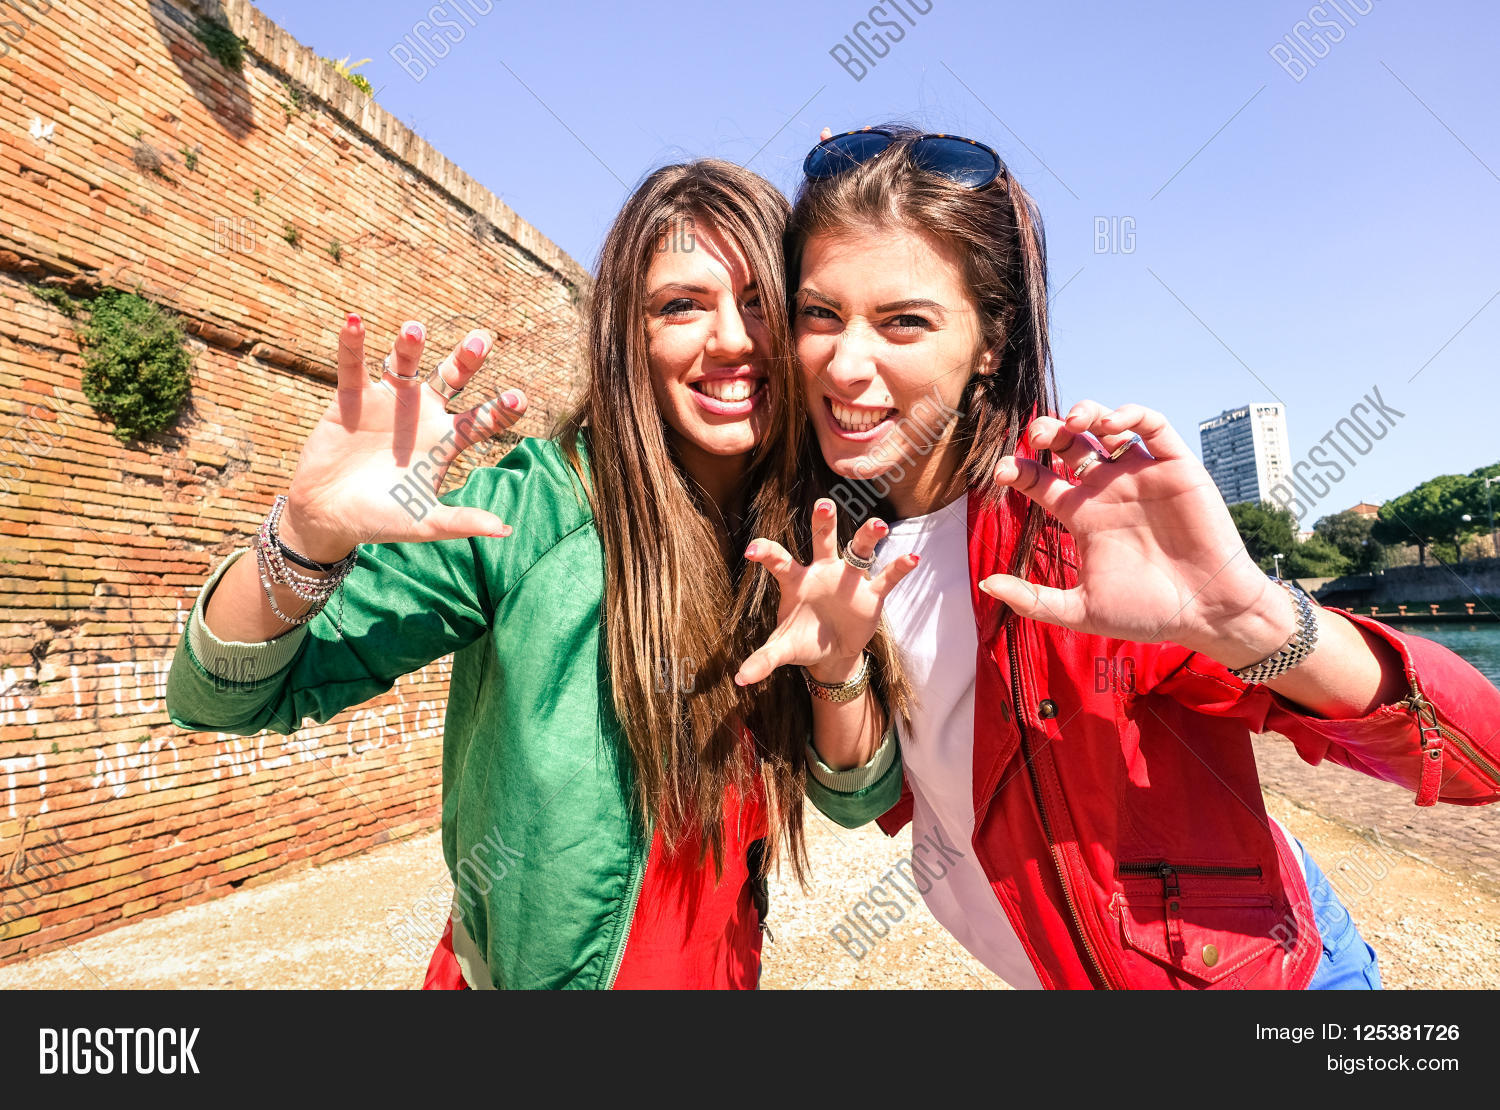 Image result for Photography gesture of women